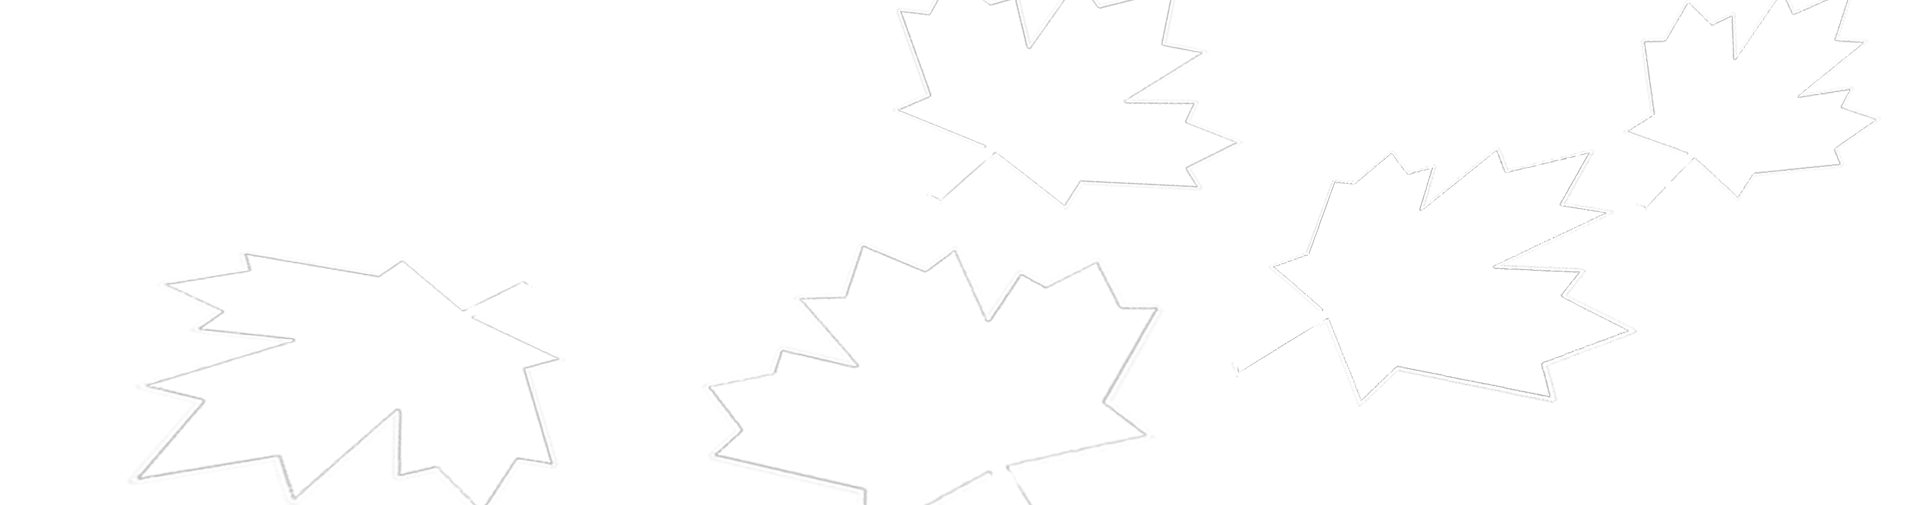 maple_leaf_sw_hires_grey.png